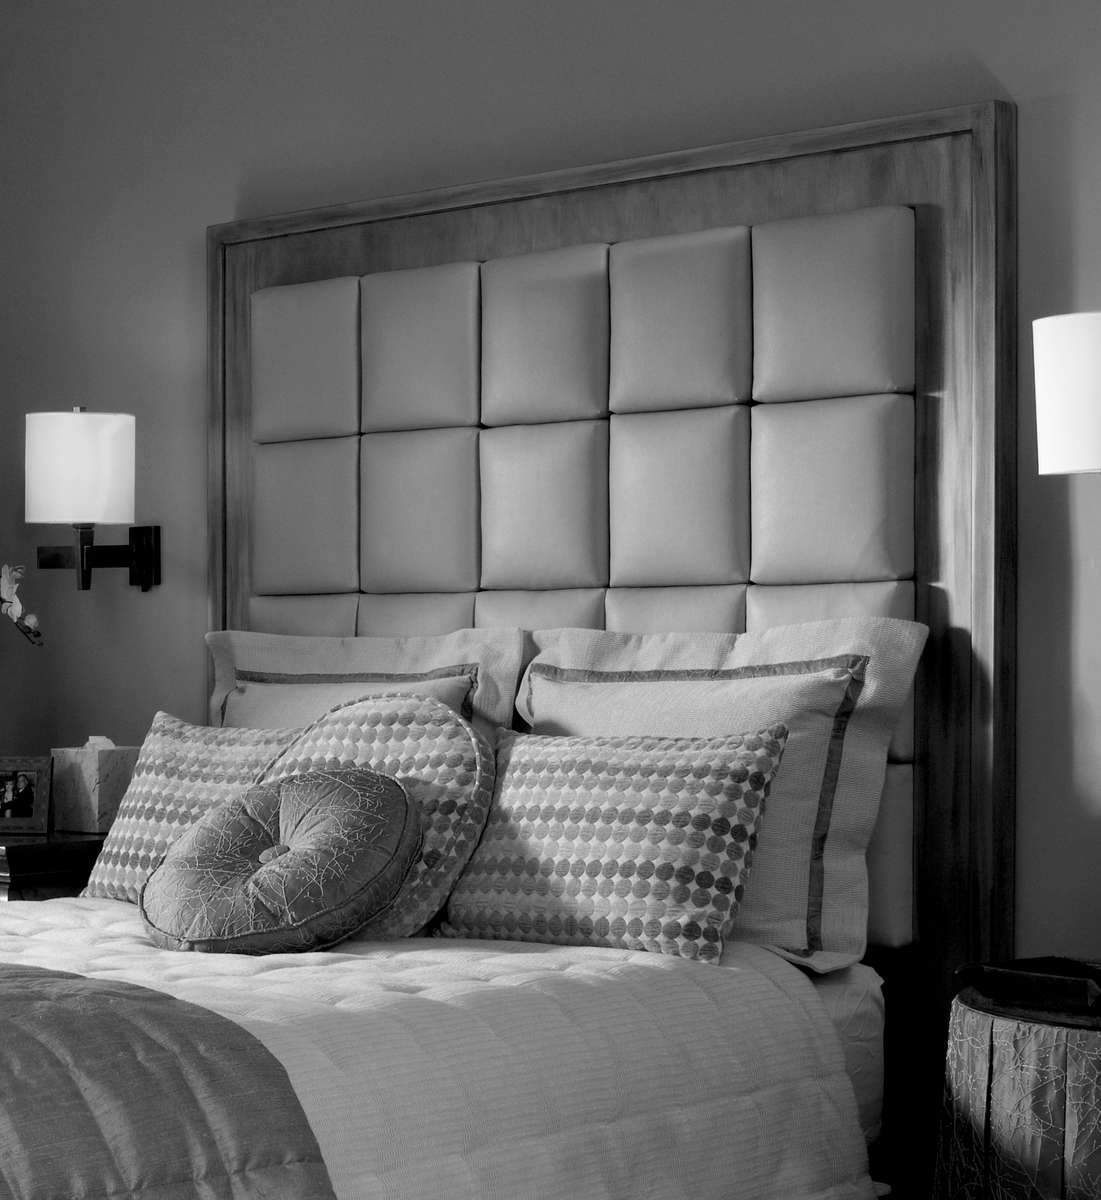 Box Frame Upholstered Headboard Bespoke Furniture Deborah Martin Designs Manhattan amp Long